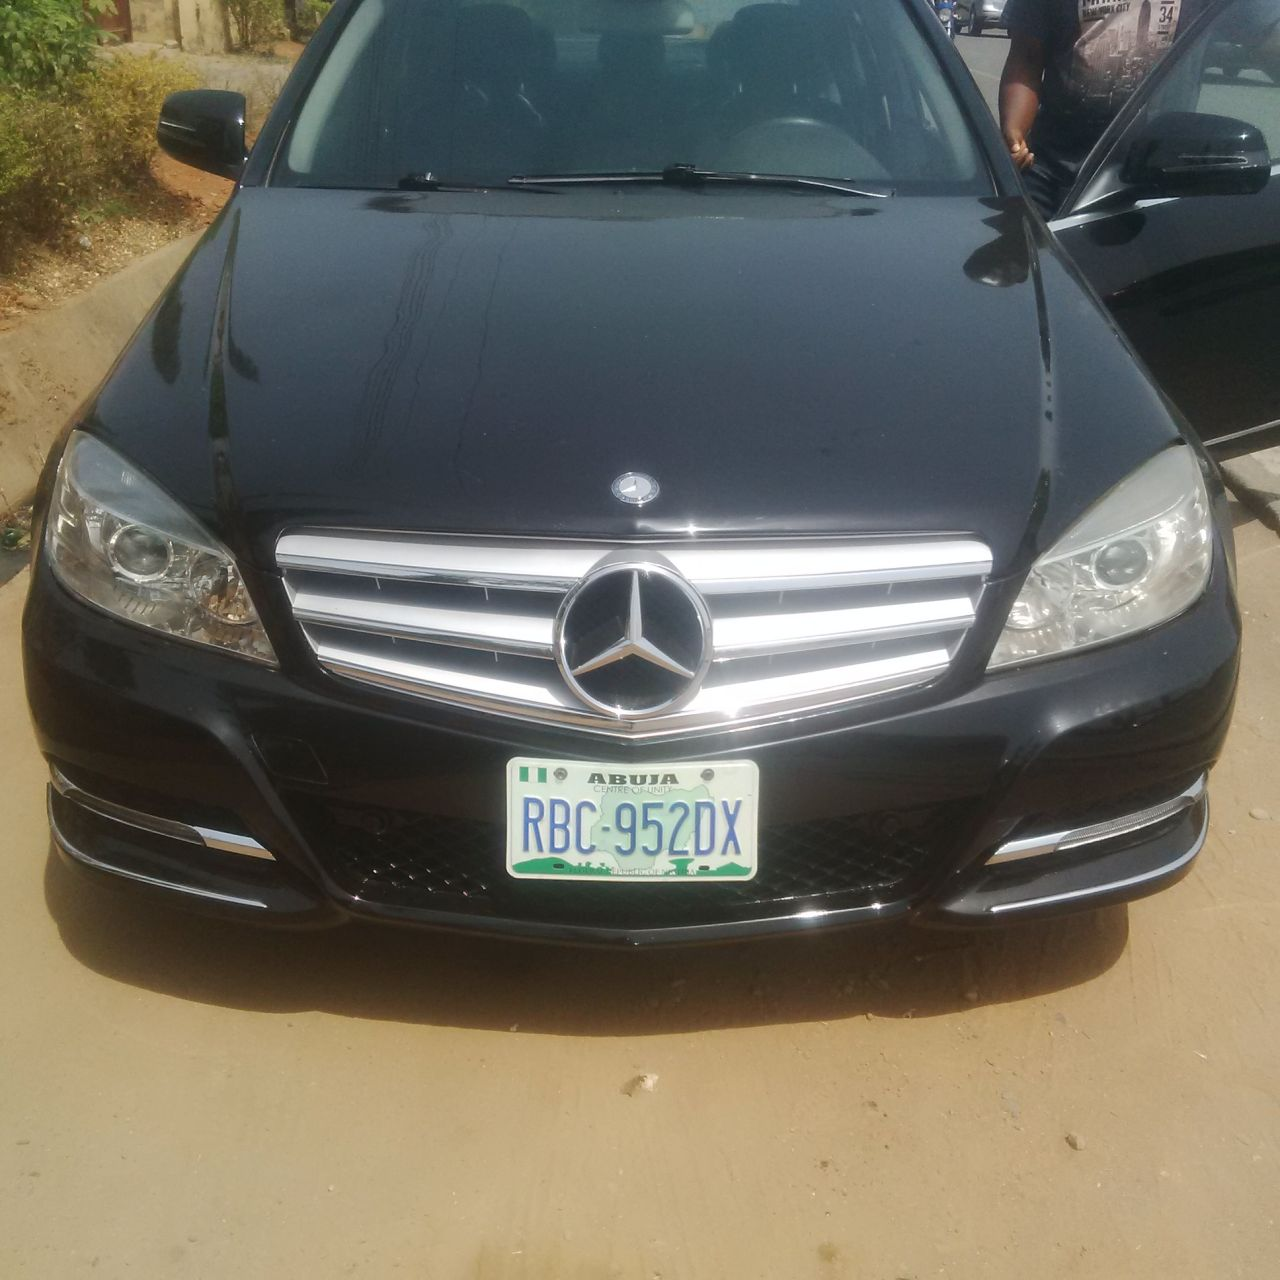 Abj fresh neat 2008 mercedes benz c300 asking price for Mercedes benz inspection cost